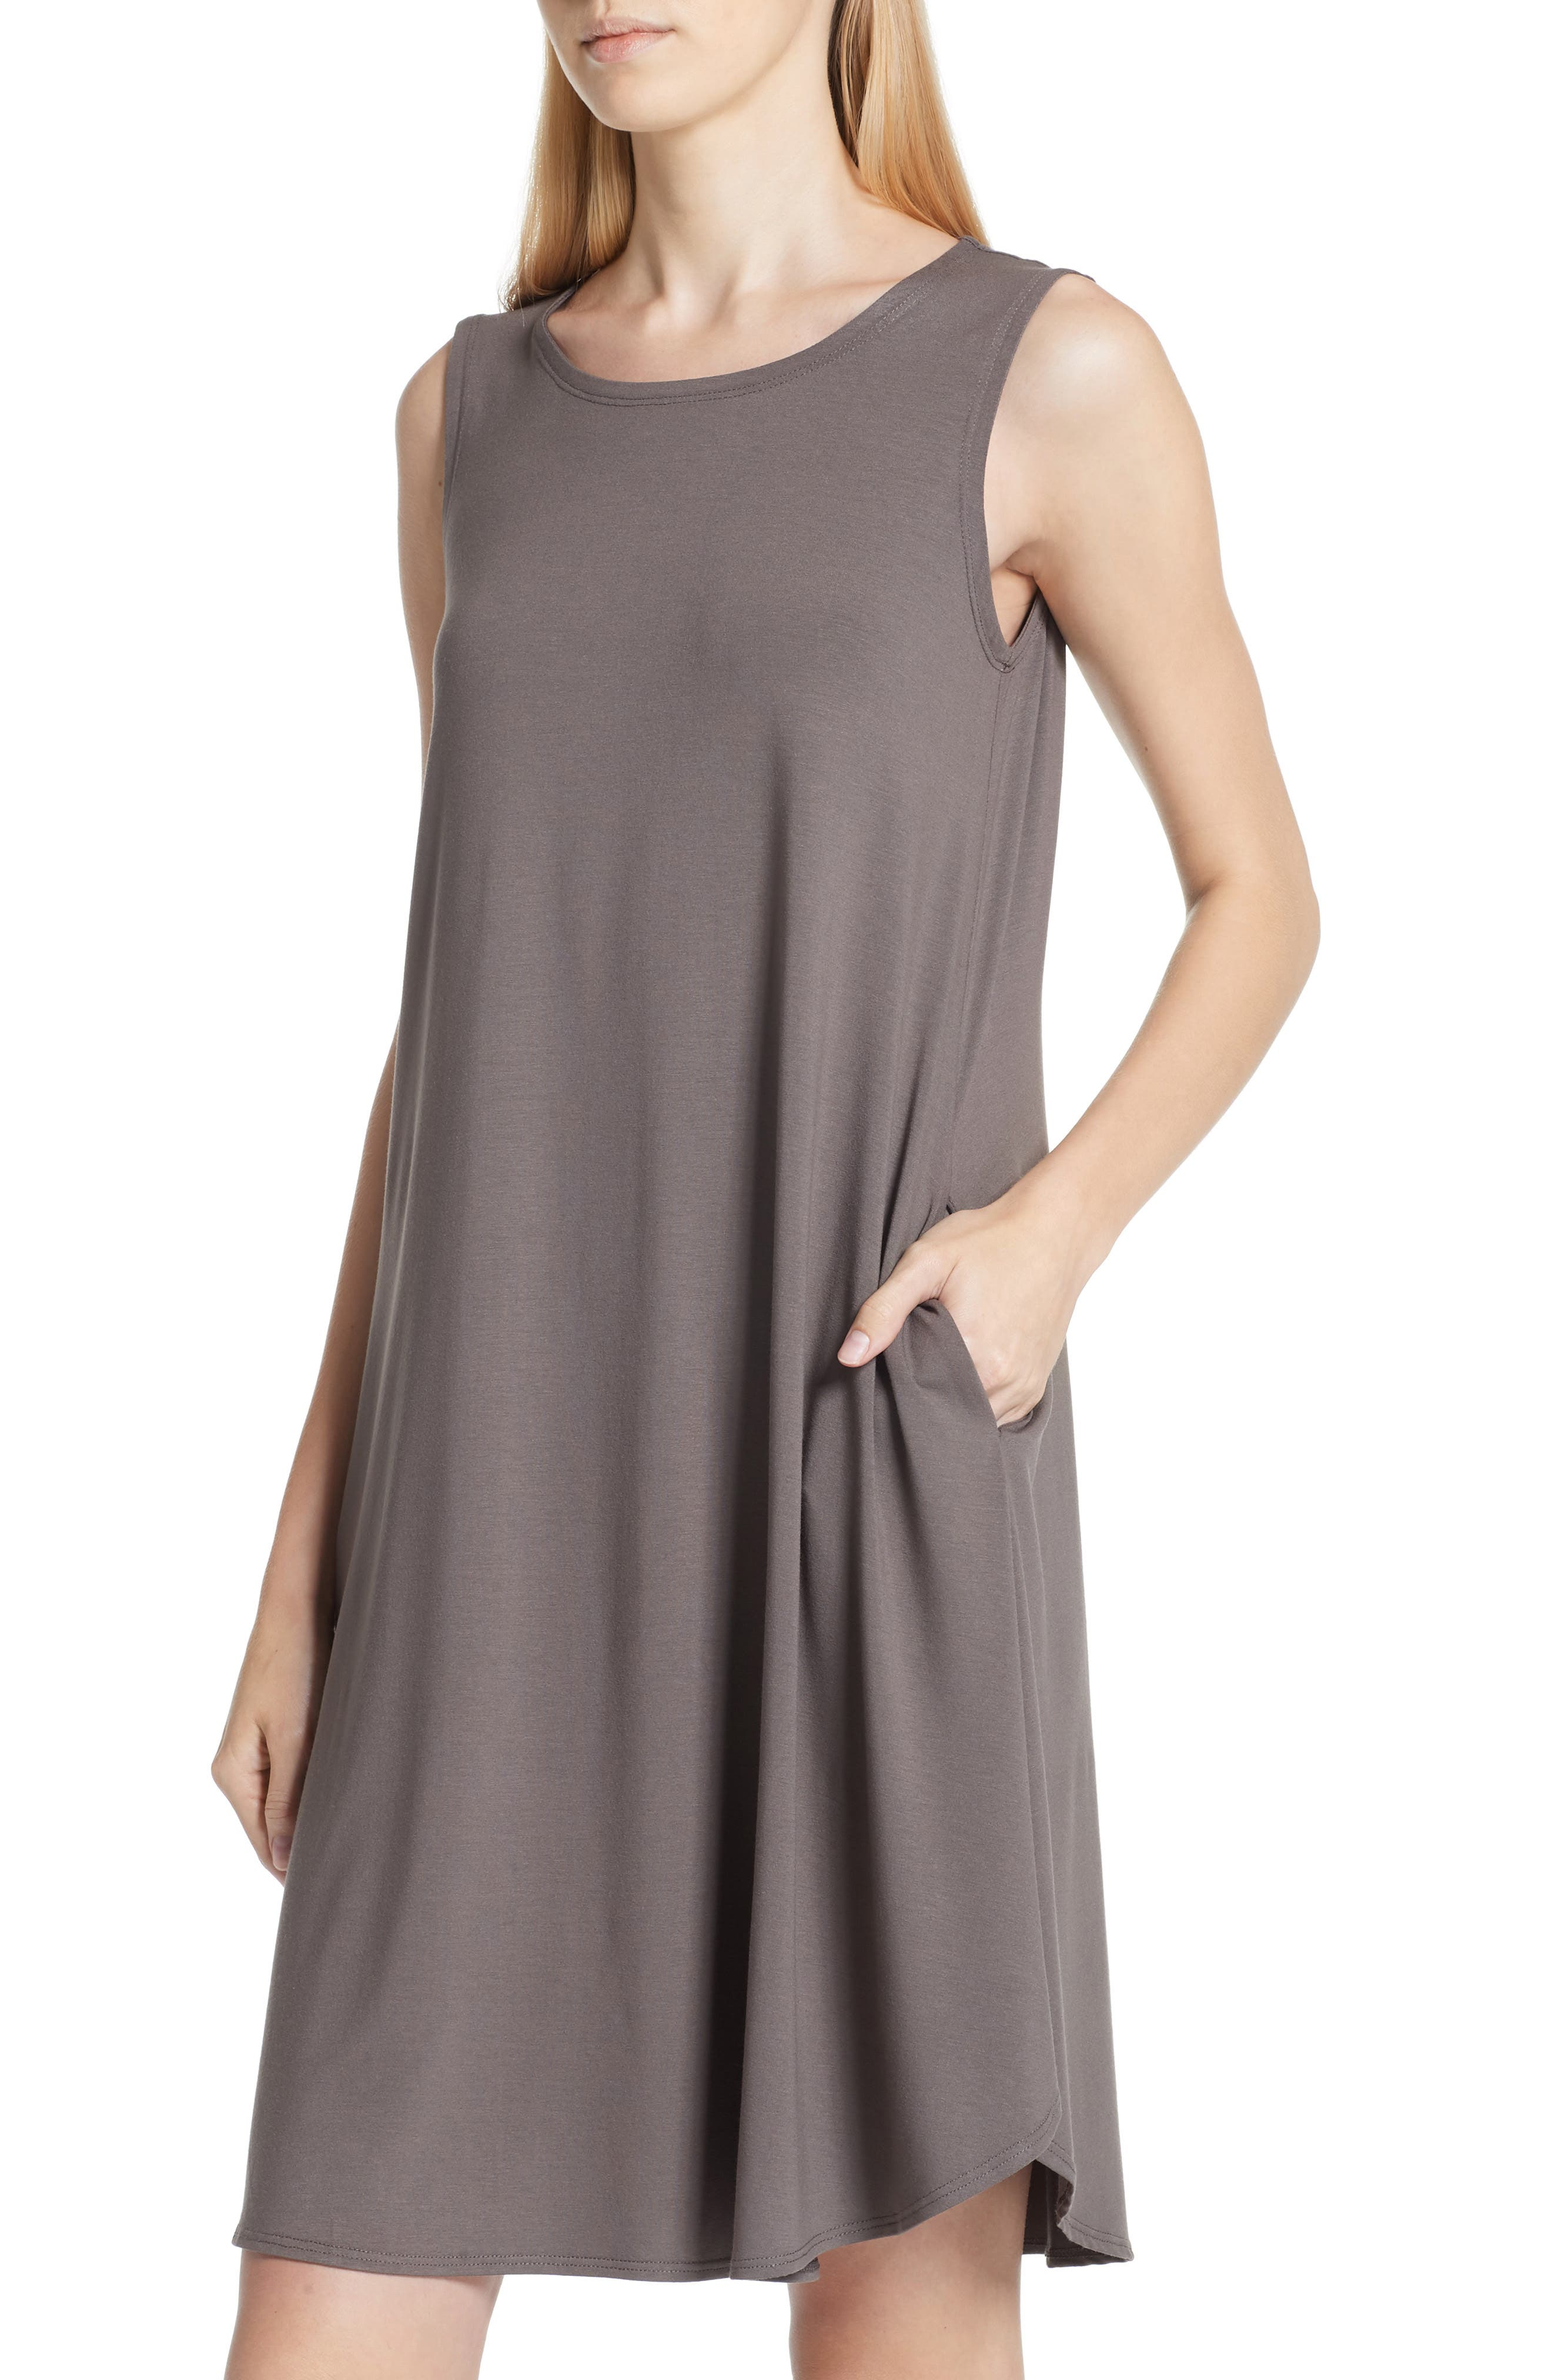 EILEEN FISHER,                             Jersey Jewel Neck Flare Dress,                             Alternate thumbnail 4, color,                             245